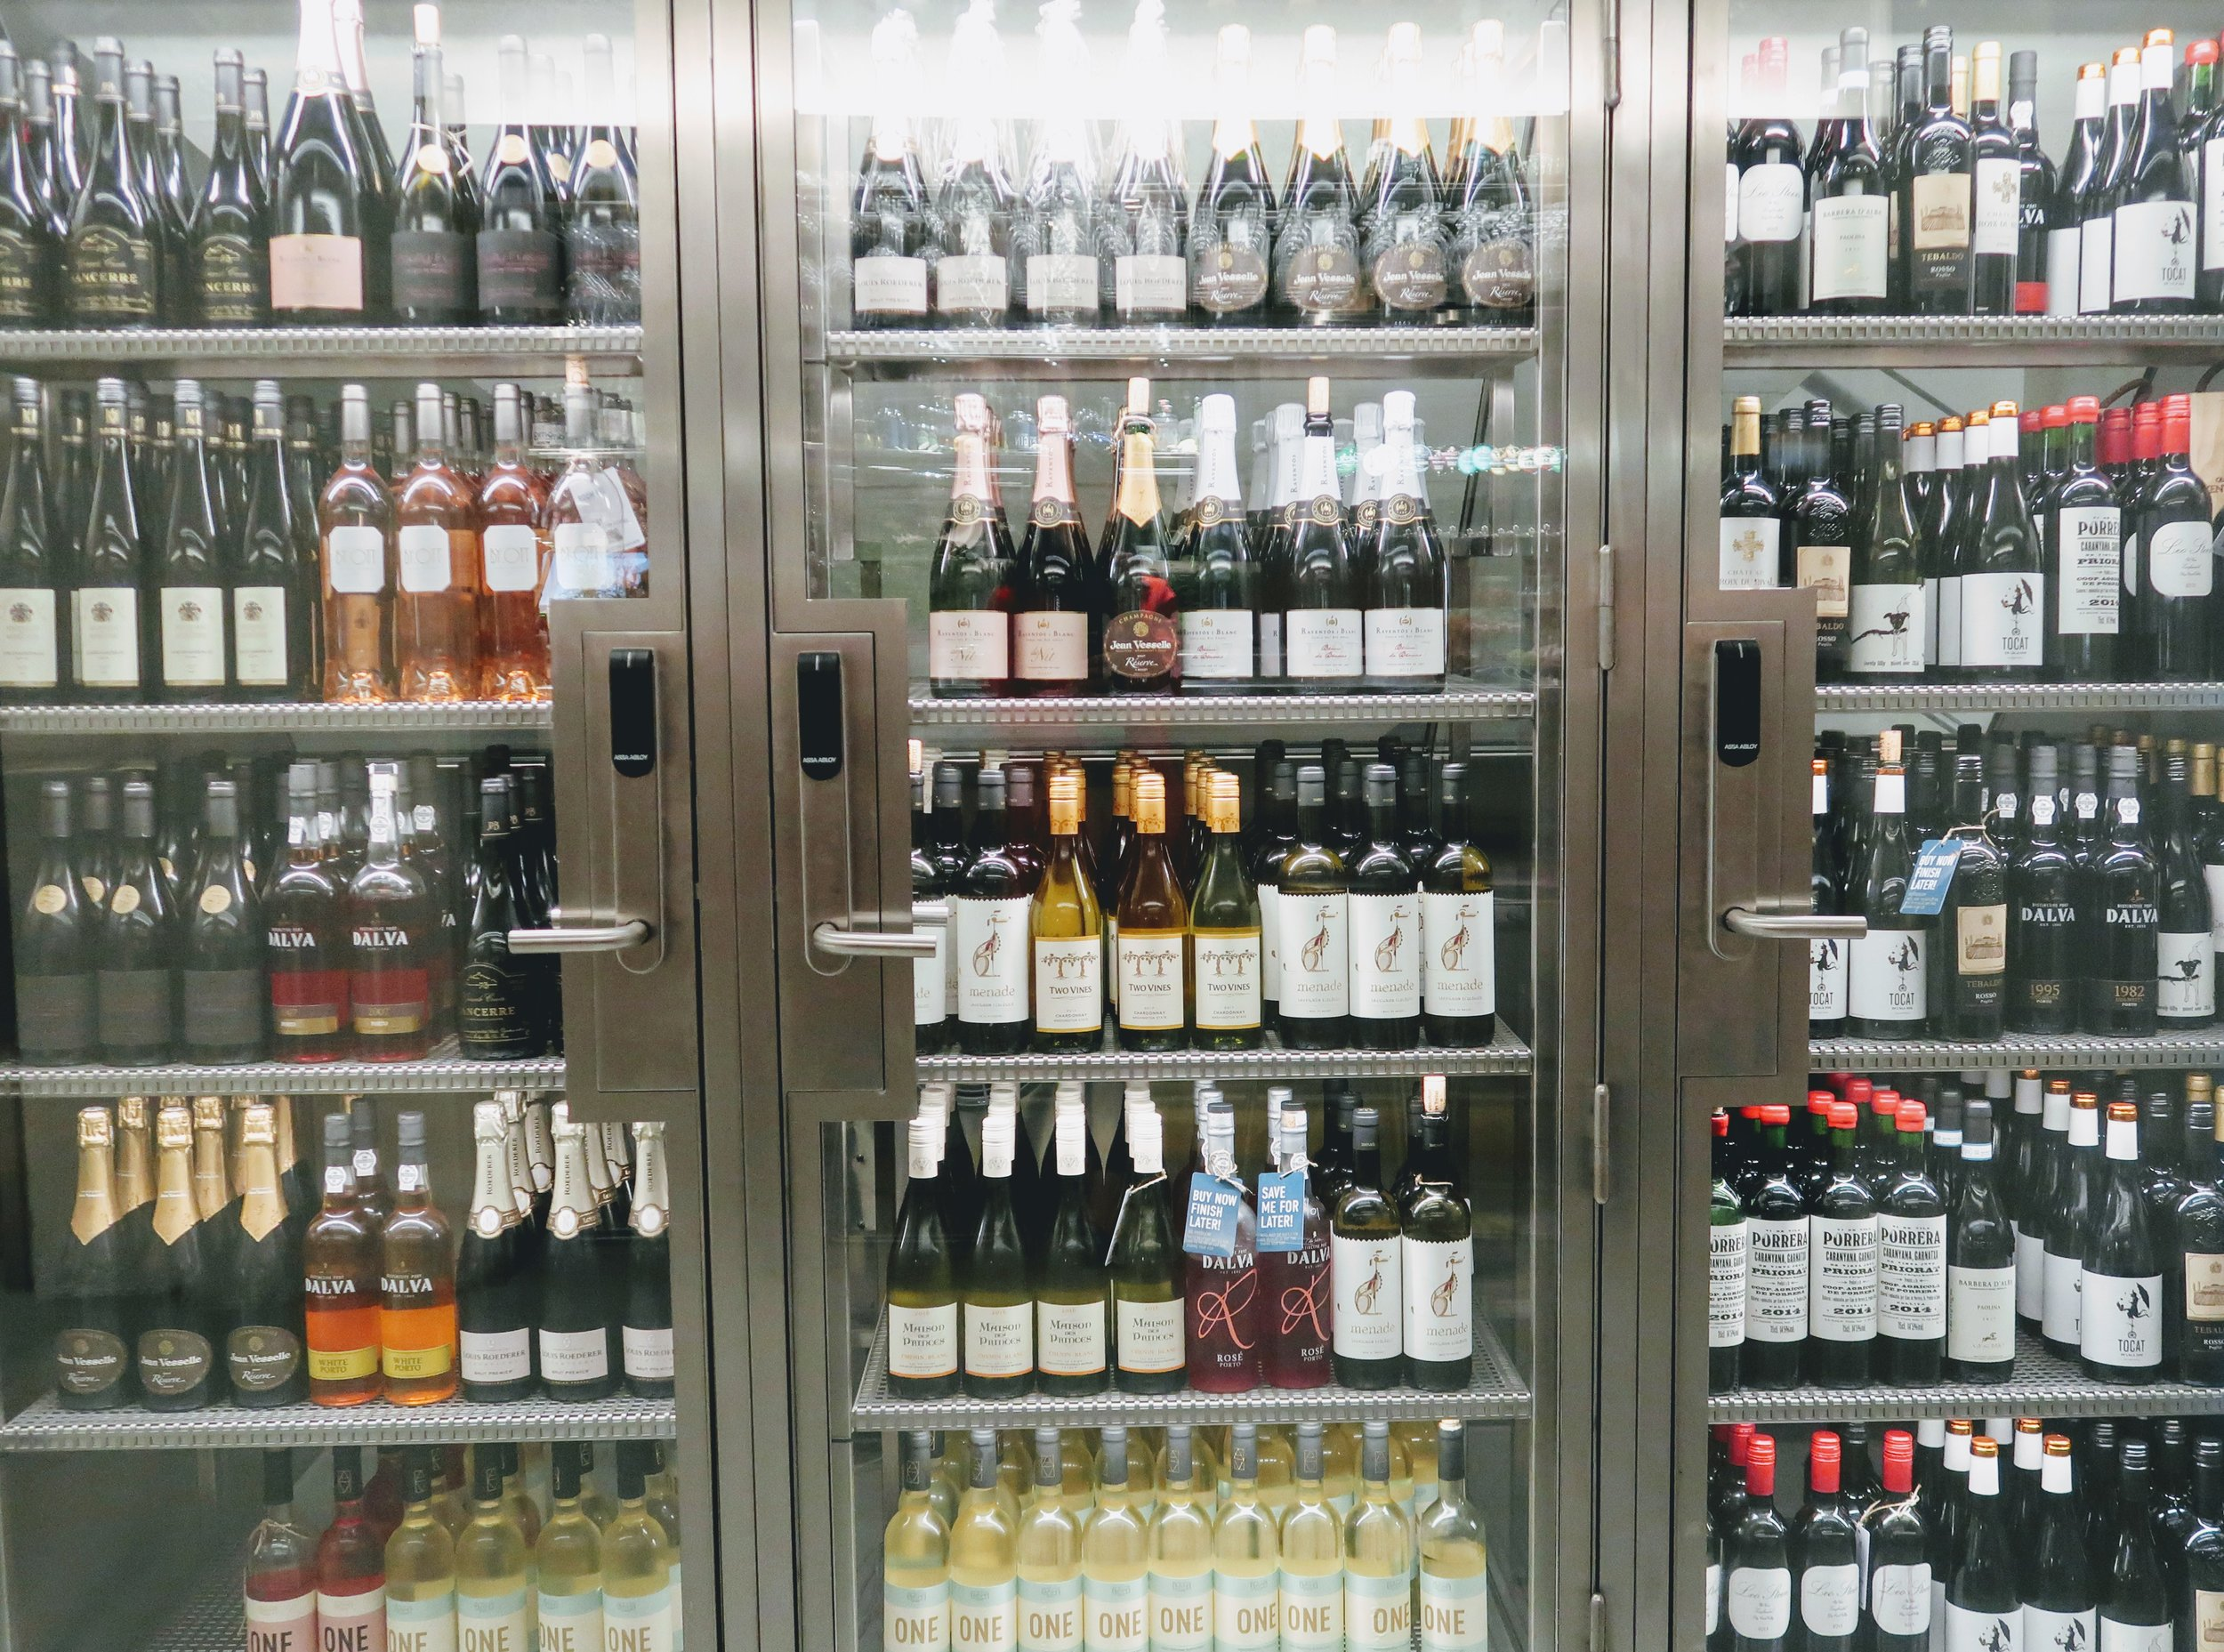 Huge selection of wine available.